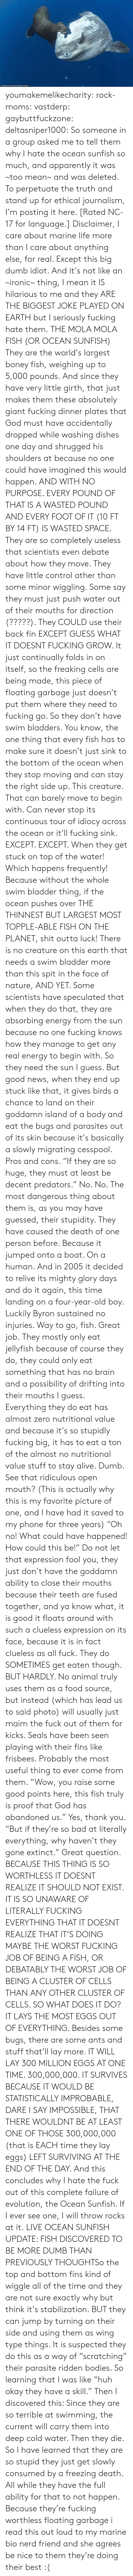 "Ironic: ORihad Herrma M  S youmakemelikecharity:  rock-moms:  vastderp:  gaybuttfuckzone:  deltasniper1000:  So someone in a group asked me to tell them why I hate the ocean sunfish so much, and apparently it was ~too mean~ and was deleted. To perpetuate the truth and stand up for ethical journalism, I'm posting it here. [Rated NC-17 for language.]  Disclaimer, I care about marine life more than I care about anything else, for real. Except this big dumb idiot. And it's not like an ~ironic~ thing, I mean it IS hilarious to me and they ARE THE BIGGEST JOKE PLAYED ON EARTH but I seriously fucking hate them.  THE MOLA MOLA FISH (OR OCEAN SUNFISH)  They are the world's largest boney fish, weighing up to 5,000 pounds. And since they have very little girth, that just makes them these absolutely giant fucking dinner plates that God must have accidentally dropped while washing dishes one day and shrugged his shoulders at because no one could have imagined this would happen. AND WITH NO PURPOSE. EVERY POUND OF THAT IS A WASTED POUND AND EVERY FOOT OF IT (10 FT BY 14 FT) IS WASTED SPACE.  They are so completely useless that scientists even debate about how they move. They have little control other than some minor wiggling. Some say they must just push water out of their mouths for direction (?????). They COULD use their back fin EXCEPT GUESS WHAT IT DOESNT FUCKING GROW. It just continually folds in on itself, so the freaking cells are being made, this piece of floating garbage just doesn't put them where they need to fucking go.   So they don't have swim bladders. You know, the one thing that every fish has to make sure it doesn't just sink to the bottom of the ocean when they stop moving and can stay the right side up. This creature. That can barely move to begin with. Can never stop its continuous tour of idiocy across the ocean or it'll fucking sink. EXCEPT. EXCEPT. When they get stuck on top of the water! Which happens frequently! Because without the whole swim bladder thing, if the ocean pushes over THE THINNEST BUT LARGEST MOST TOPPLE-ABLE FISH ON THE PLANET, shit outta luck! There is no creature on this earth that needs a swim bladder more than this spit in the face of nature, AND YET. Some scientists have speculated that when they do that, they are absorbing energy from the sun because no one fucking knows how they manage to get any real energy to begin with. So they need the sun I guess. But good news, when they end up stuck like that, it gives birds a chance to land on their goddamn island of a body and eat the bugs and parasites out of its skin because it's basically a slowly migrating cesspool. Pros and cons.   ""If they are so huge, they must at least be decent predators."" No. No. The most dangerous thing about them is, as you may have guessed, their stupidity. They have caused the death of one person before. Because it jumped onto a boat. On a human. And in 2005 it decided to relive its mighty glory days and do it again, this time landing on a four-year-old boy. Luckily Byron sustained no injuries. Way to go, fish. Great job.  They mostly only eat jellyfish because of course they do, they could only eat something that has no brain and a possibility of drifting into their mouths I guess. Everything they do eat has almost zero nutritional value and because it's so stupidly fucking big, it has to eat a ton of the almost no nutritional value stuff to stay alive. Dumb. See that ridiculous open mouth? (This is actually why this is my favorite picture of one, and I have had it saved to my phone for three years) ""Oh no! What could have happened! How could this be!"" Do not let that expression fool you, they just don't have the goddamn ability to close their mouths because their teeth are fused together, and ya know what, it is good it floats around with such a clueless expression on its face, because it is in fact clueless as all fuck.  They do SOMETIMES get eaten though. BUT HARDLY. No animal truly uses them as a food source, but instead (which has lead us to said photo) will usually just maim the fuck out of them for kicks. Seals have been seen playing with their fins like frisbees. Probably the most useful thing to ever come from them.   ""Wow, you raise some good points here, this fish truly is proof that God has abandoned us."" Yes, thank you. ""But if they're so bad at literally everything, why haven't they gone extinct."" Great question.   BECAUSE THIS THING IS SO WORTHLESS IT DOESNT REALIZE IT SHOULD NOT EXIST. IT IS SO UNAWARE OF LITERALLY FUCKING EVERYTHING THAT IT DOESNT REALIZE THAT IT'S DOING MAYBE THE WORST FUCKING JOB OF BEING A FISH, OR DEBATABLY THE WORST JOB OF BEING A CLUSTER OF CELLS THAN ANY OTHER CLUSTER OF CELLS. SO WHAT DOES IT DO? IT LAYS THE MOST EGGS OUT OF EVERYTHING. Besides some bugs, there are some ants and stuff that'll lay more. IT WILL LAY 300 MILLION EGGS AT ONE TIME. 300,000,000. IT SURVIVES BECAUSE IT WOULD BE STATISTICALLY IMPROBABLE, DARE I SAY IMPOSSIBLE, THAT THERE WOULDNT BE AT LEAST ONE OF THOSE 300,000,000 (that is EACH time they lay eggs) LEFT SURVIVING AT THE END OF THE DAY.   And this concludes why I hate the fuck out of this complete failure of evolution, the Ocean Sunfish. If I ever see one, I will throw rocks at it.   LIVE OCEAN SUNFISH UPDATE: FISH DISCOVERED TO BE MORE DUMB THAN PREVIOUSLY THOUGHTSo  the top and bottom fins kind of wiggle all of the time and they are not  sure exactly why but think it's stabilization. BUT they can jump by  turning on their side and using them as  wing type things. It is suspected they do this as a way of ""scratching""  their parasite ridden bodies. So learning that I was like ""huh okay they  have a skill."" Then I discovered this: Since they  are so terrible at swimming, the current will carry them into deep cold  water. Then they die. So I have learned that they are so stupid they  just get slowly consumed by a freezing death. All while they have the  full ability for that to not happen. Because they're fucking worthless  floating garbage    i read this out loud to my marine bio nerd friend and she agrees   be nice to them they're doing their best :("